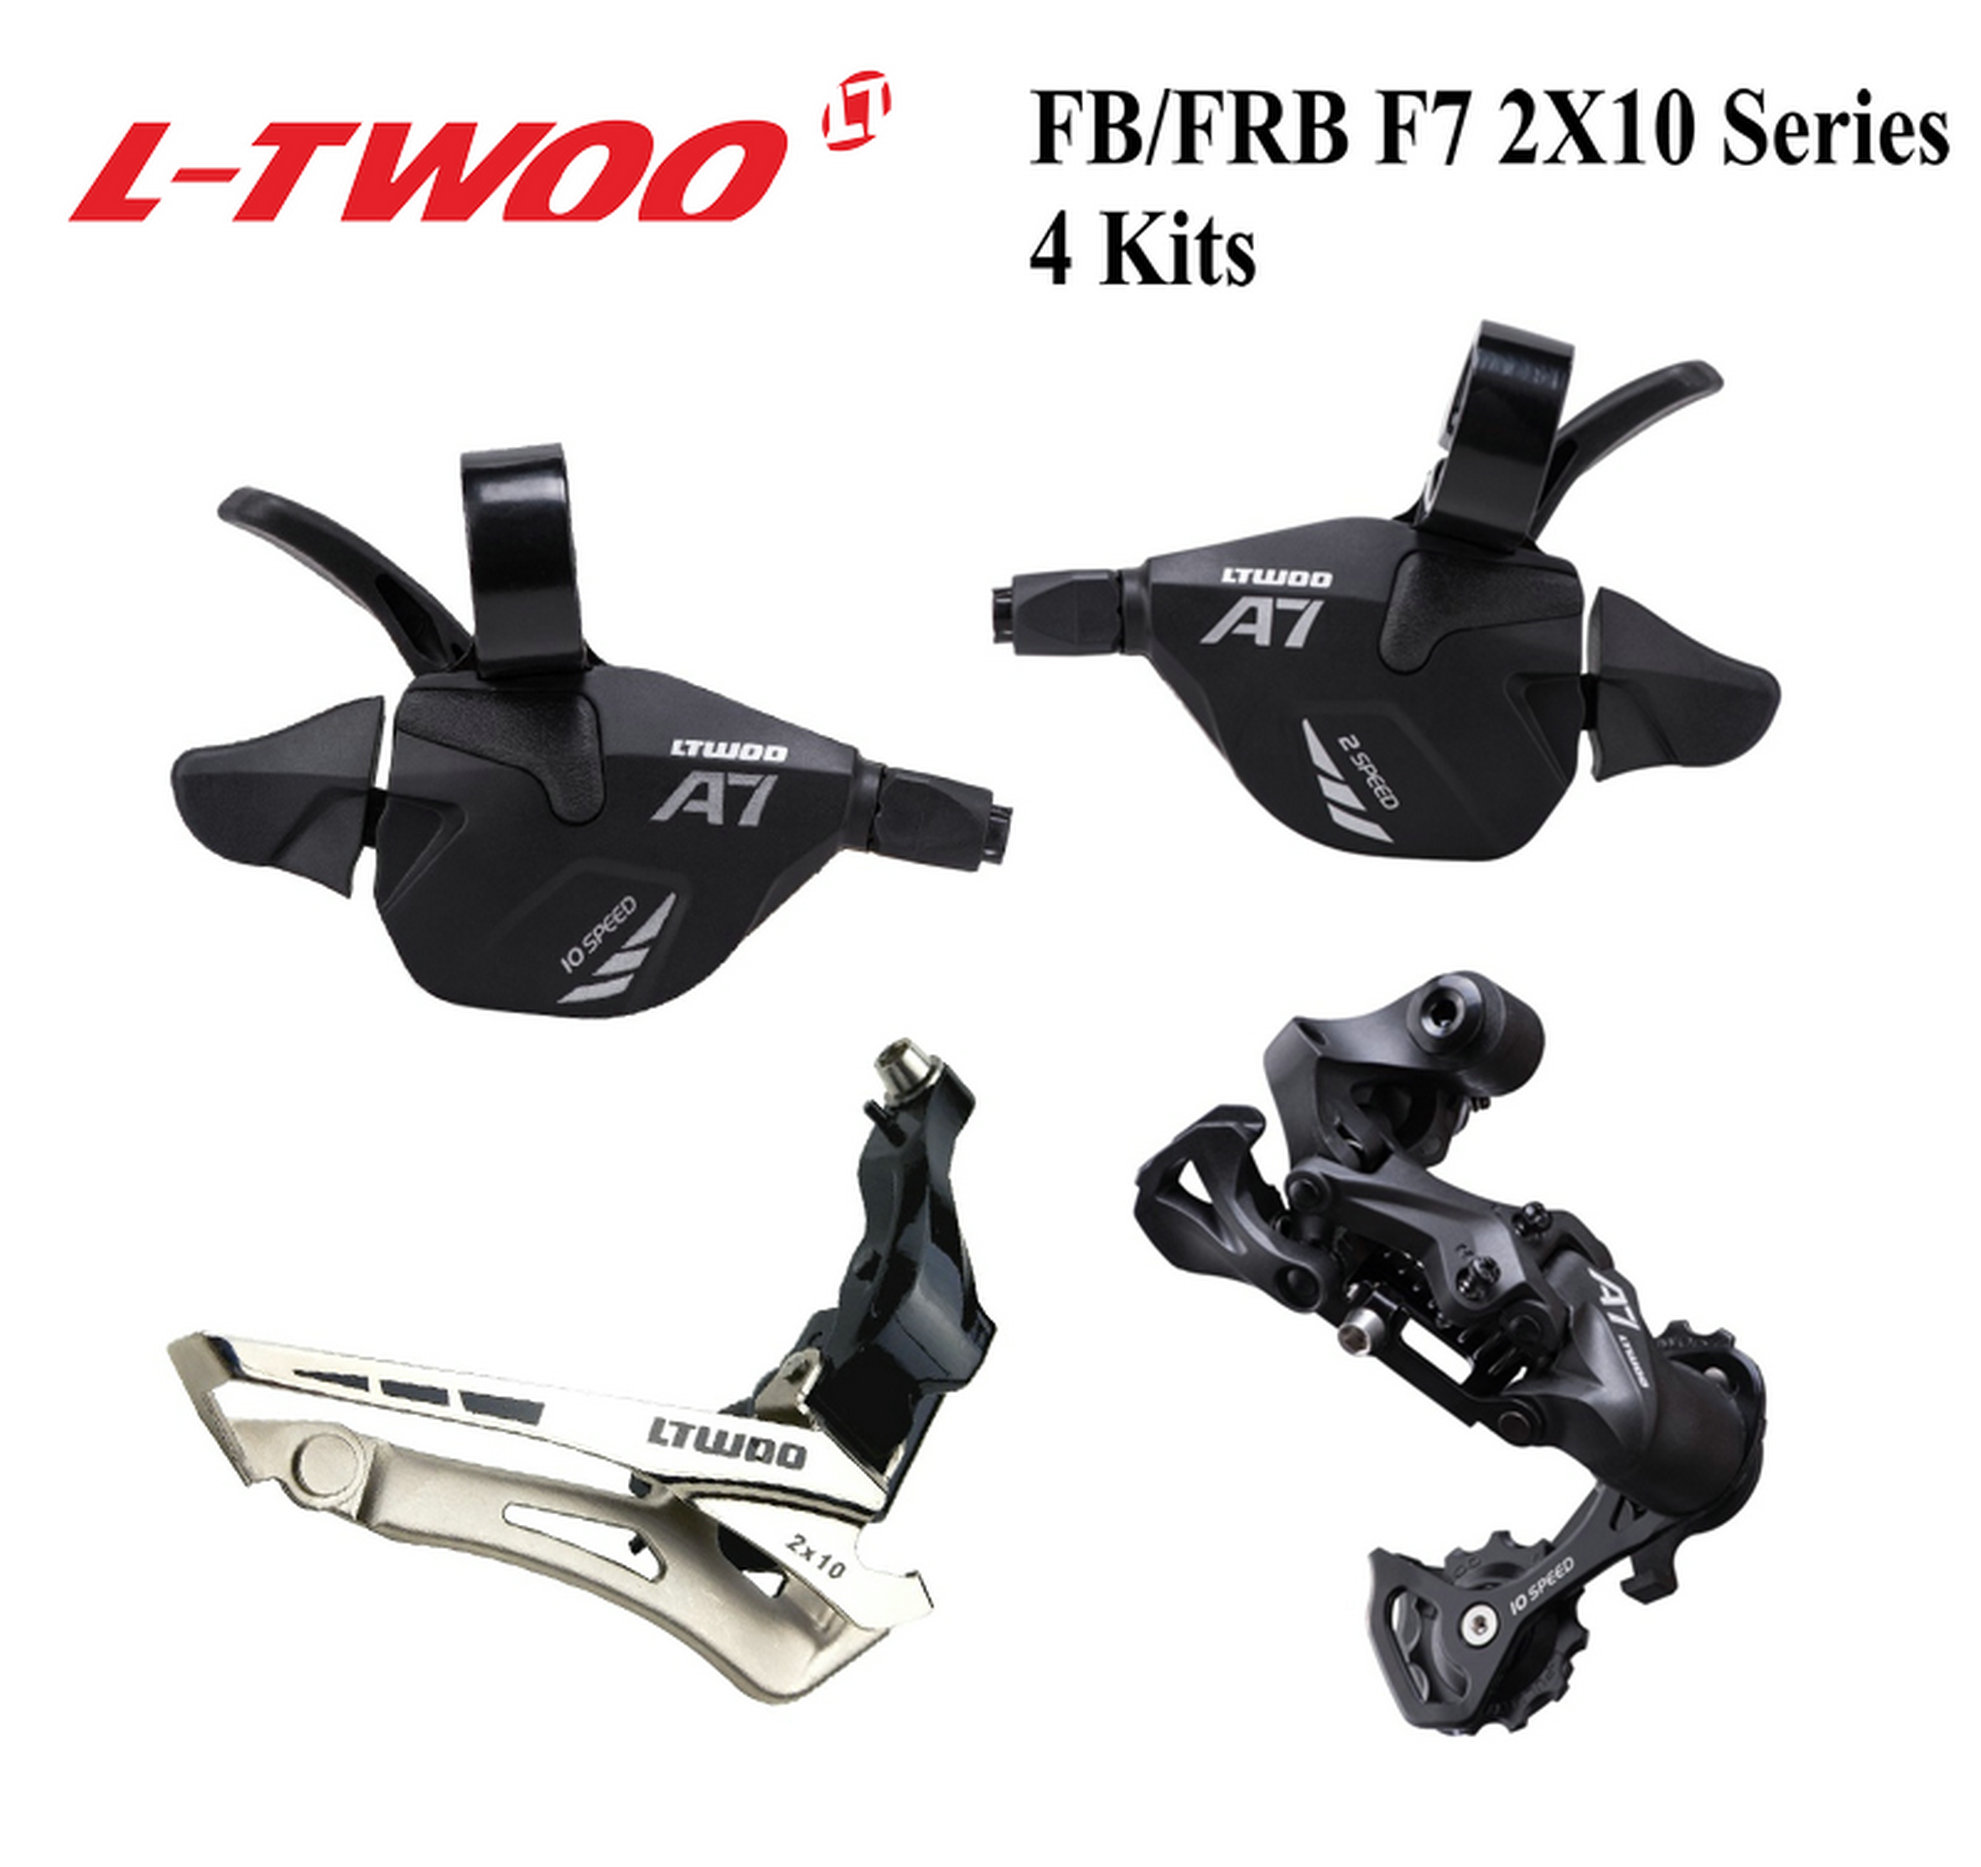 LTWOO Groupset F7 20S Folding bike series <font><b>2x10</b></font> derailleur groupset shift lever derailleur front and rear, X9, X7, GX,Spare Parts image